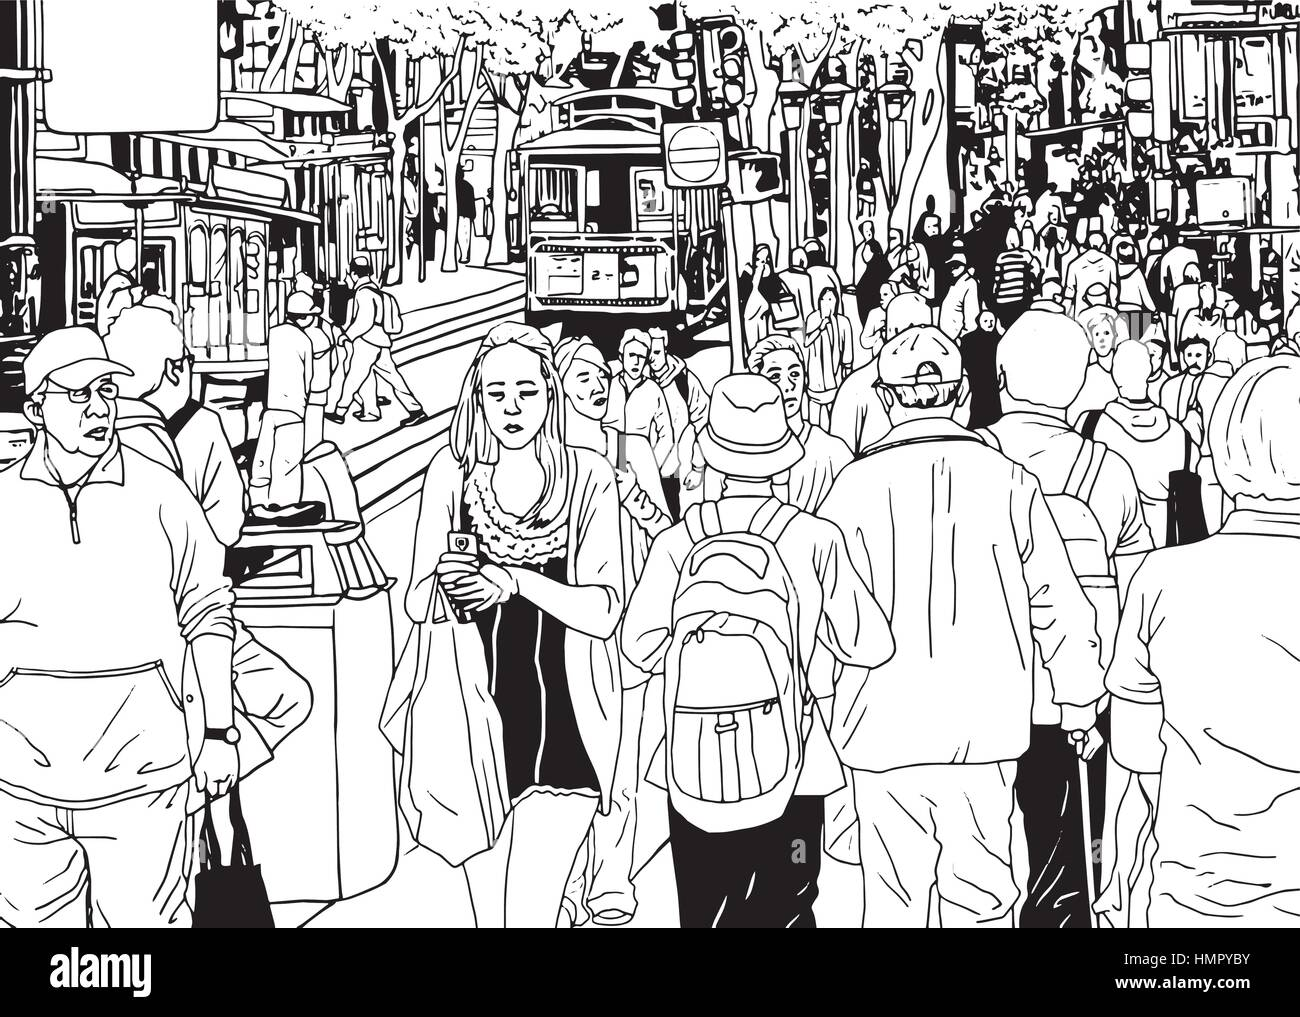 Street Crowd People Walking By the City Street Vector Illustration - Stock Vector